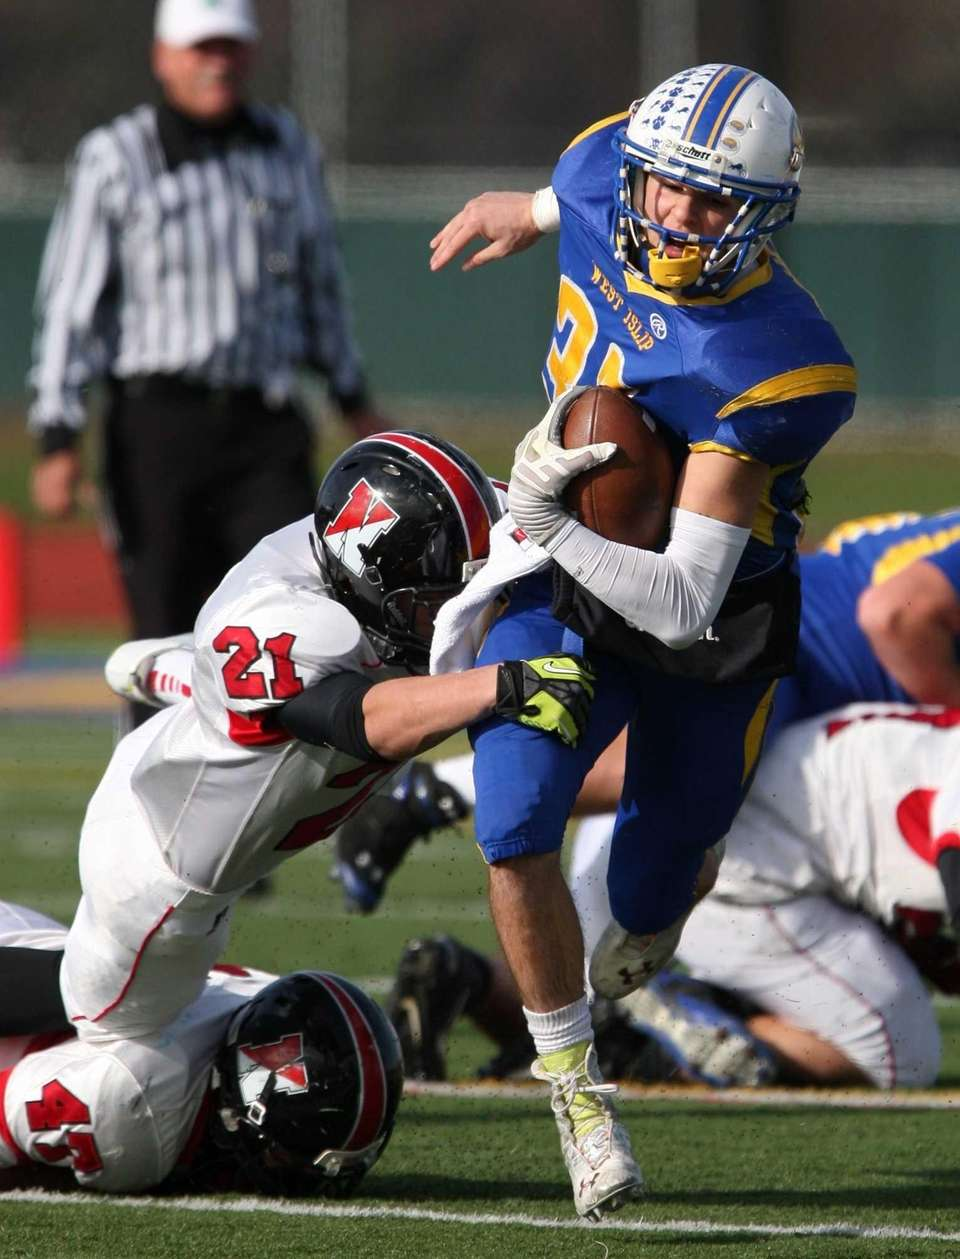 Matt McKeon of West Islip gets brought down